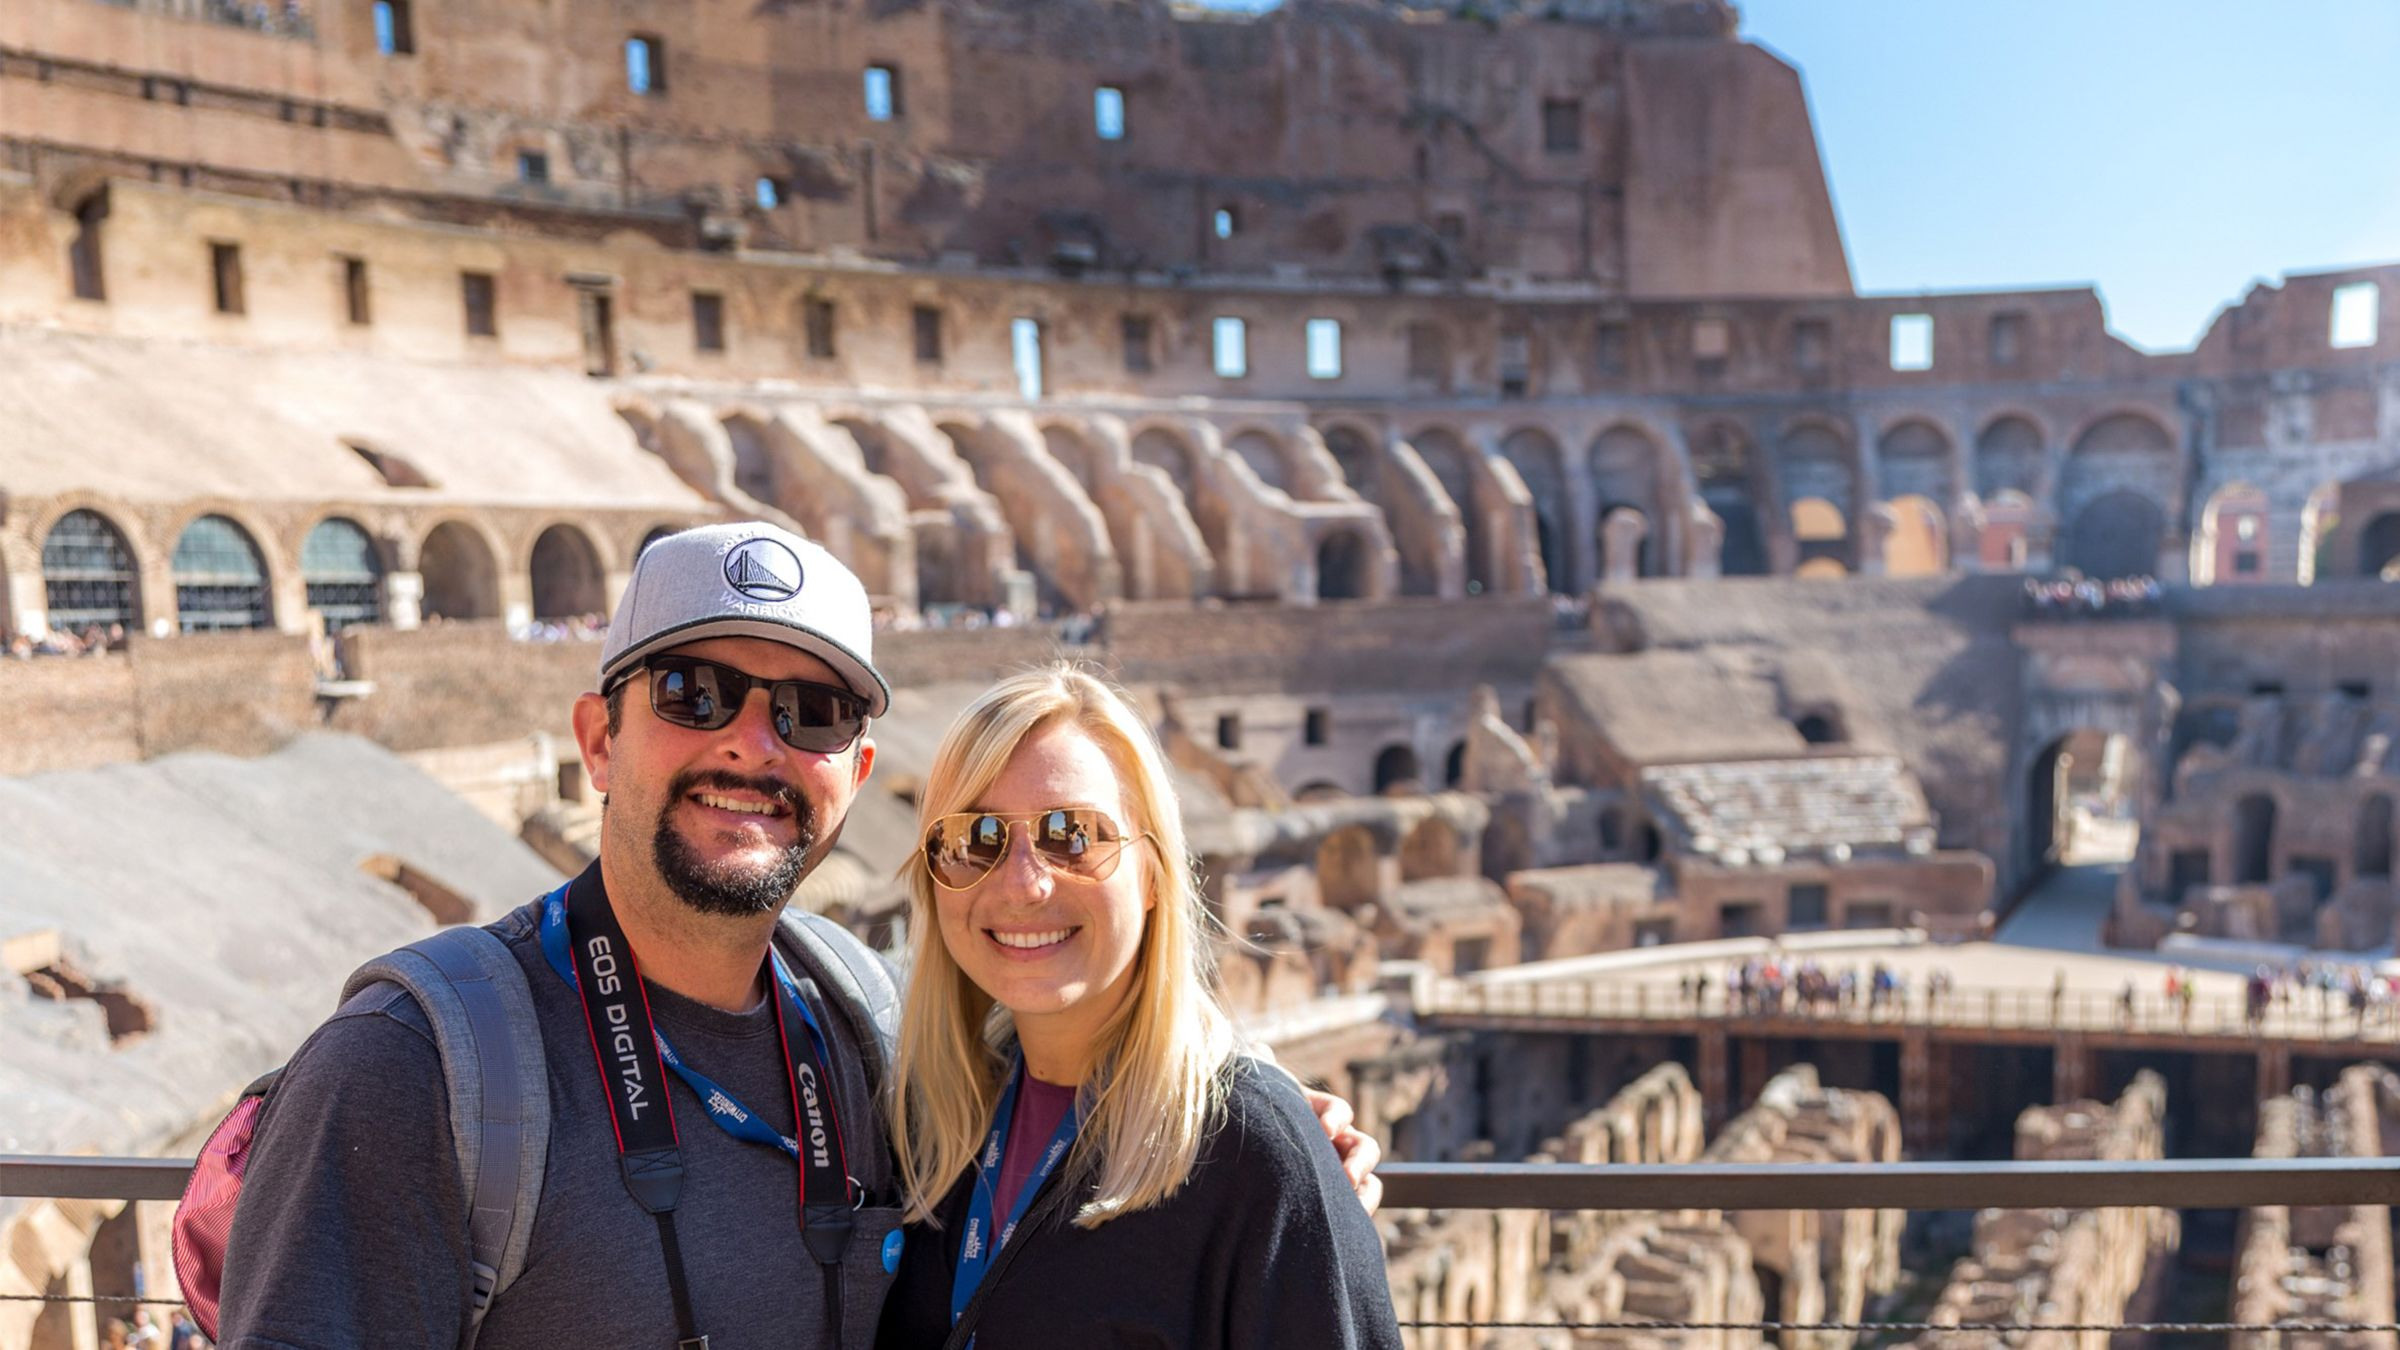 Skip the Line: Colosseum, Forum & Ancient Rome Guided Tour